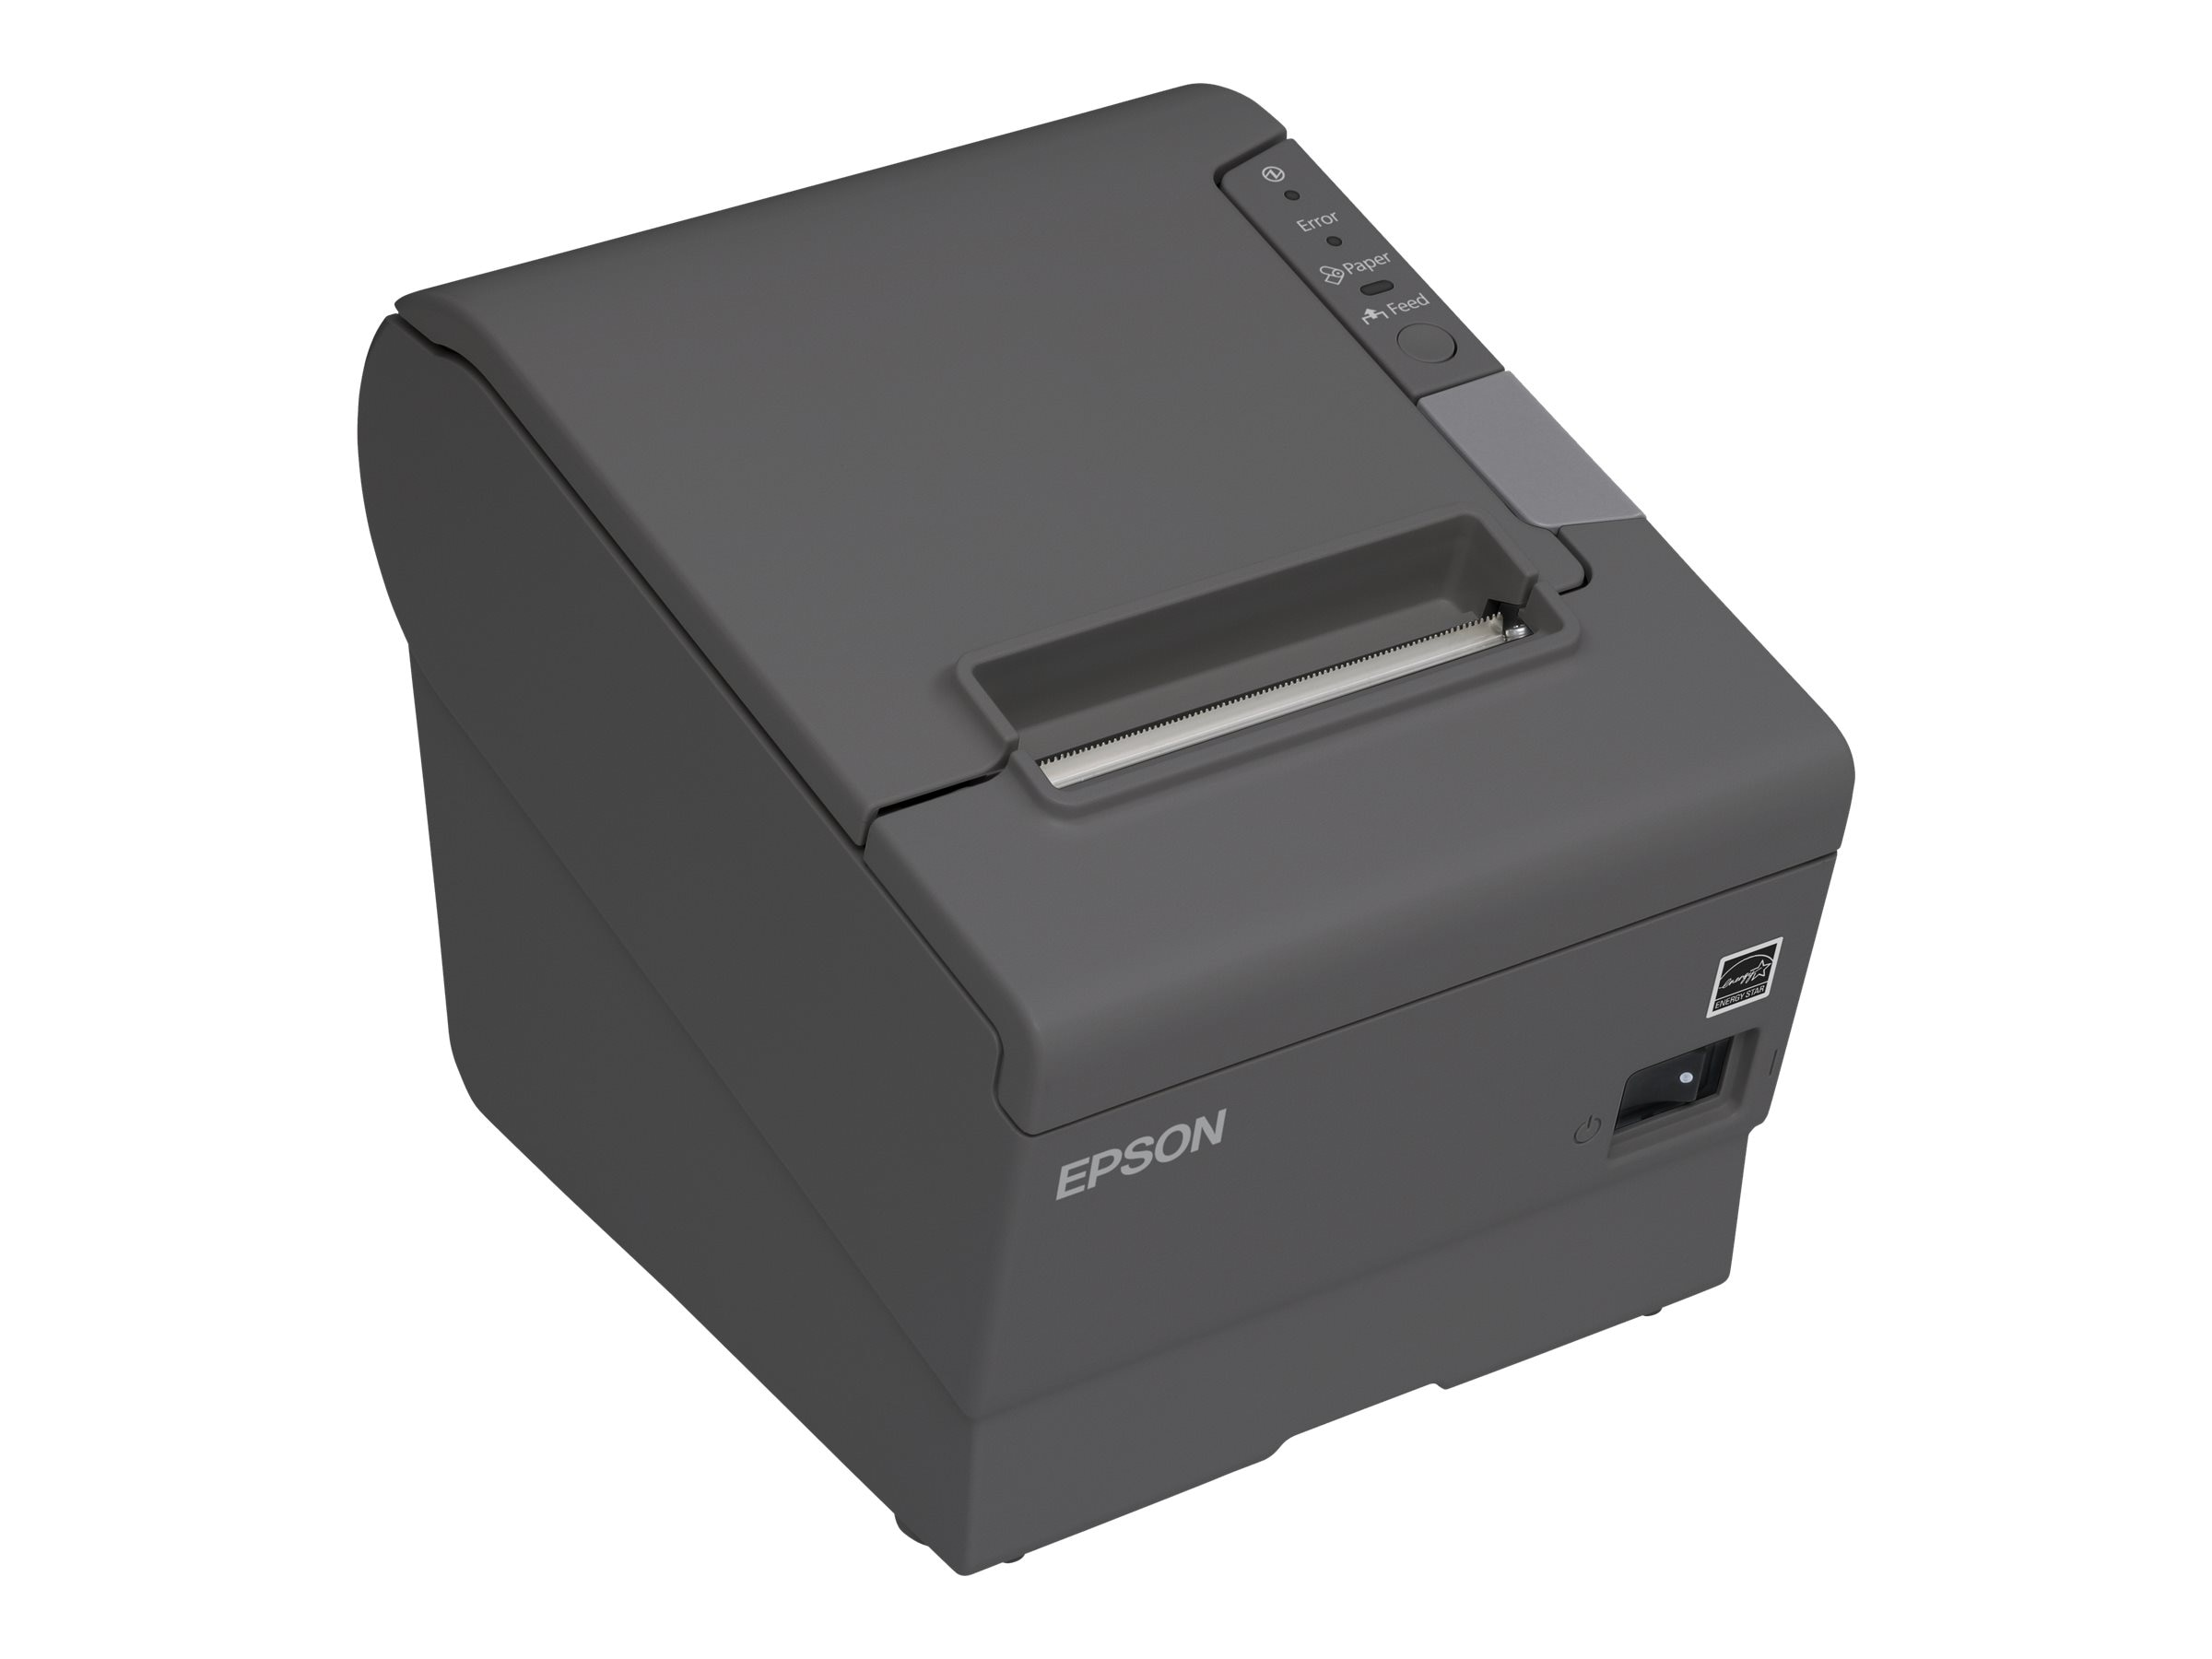 Epson TM-T88V Thermal Receipt Printer - Black, C31CA85A6331